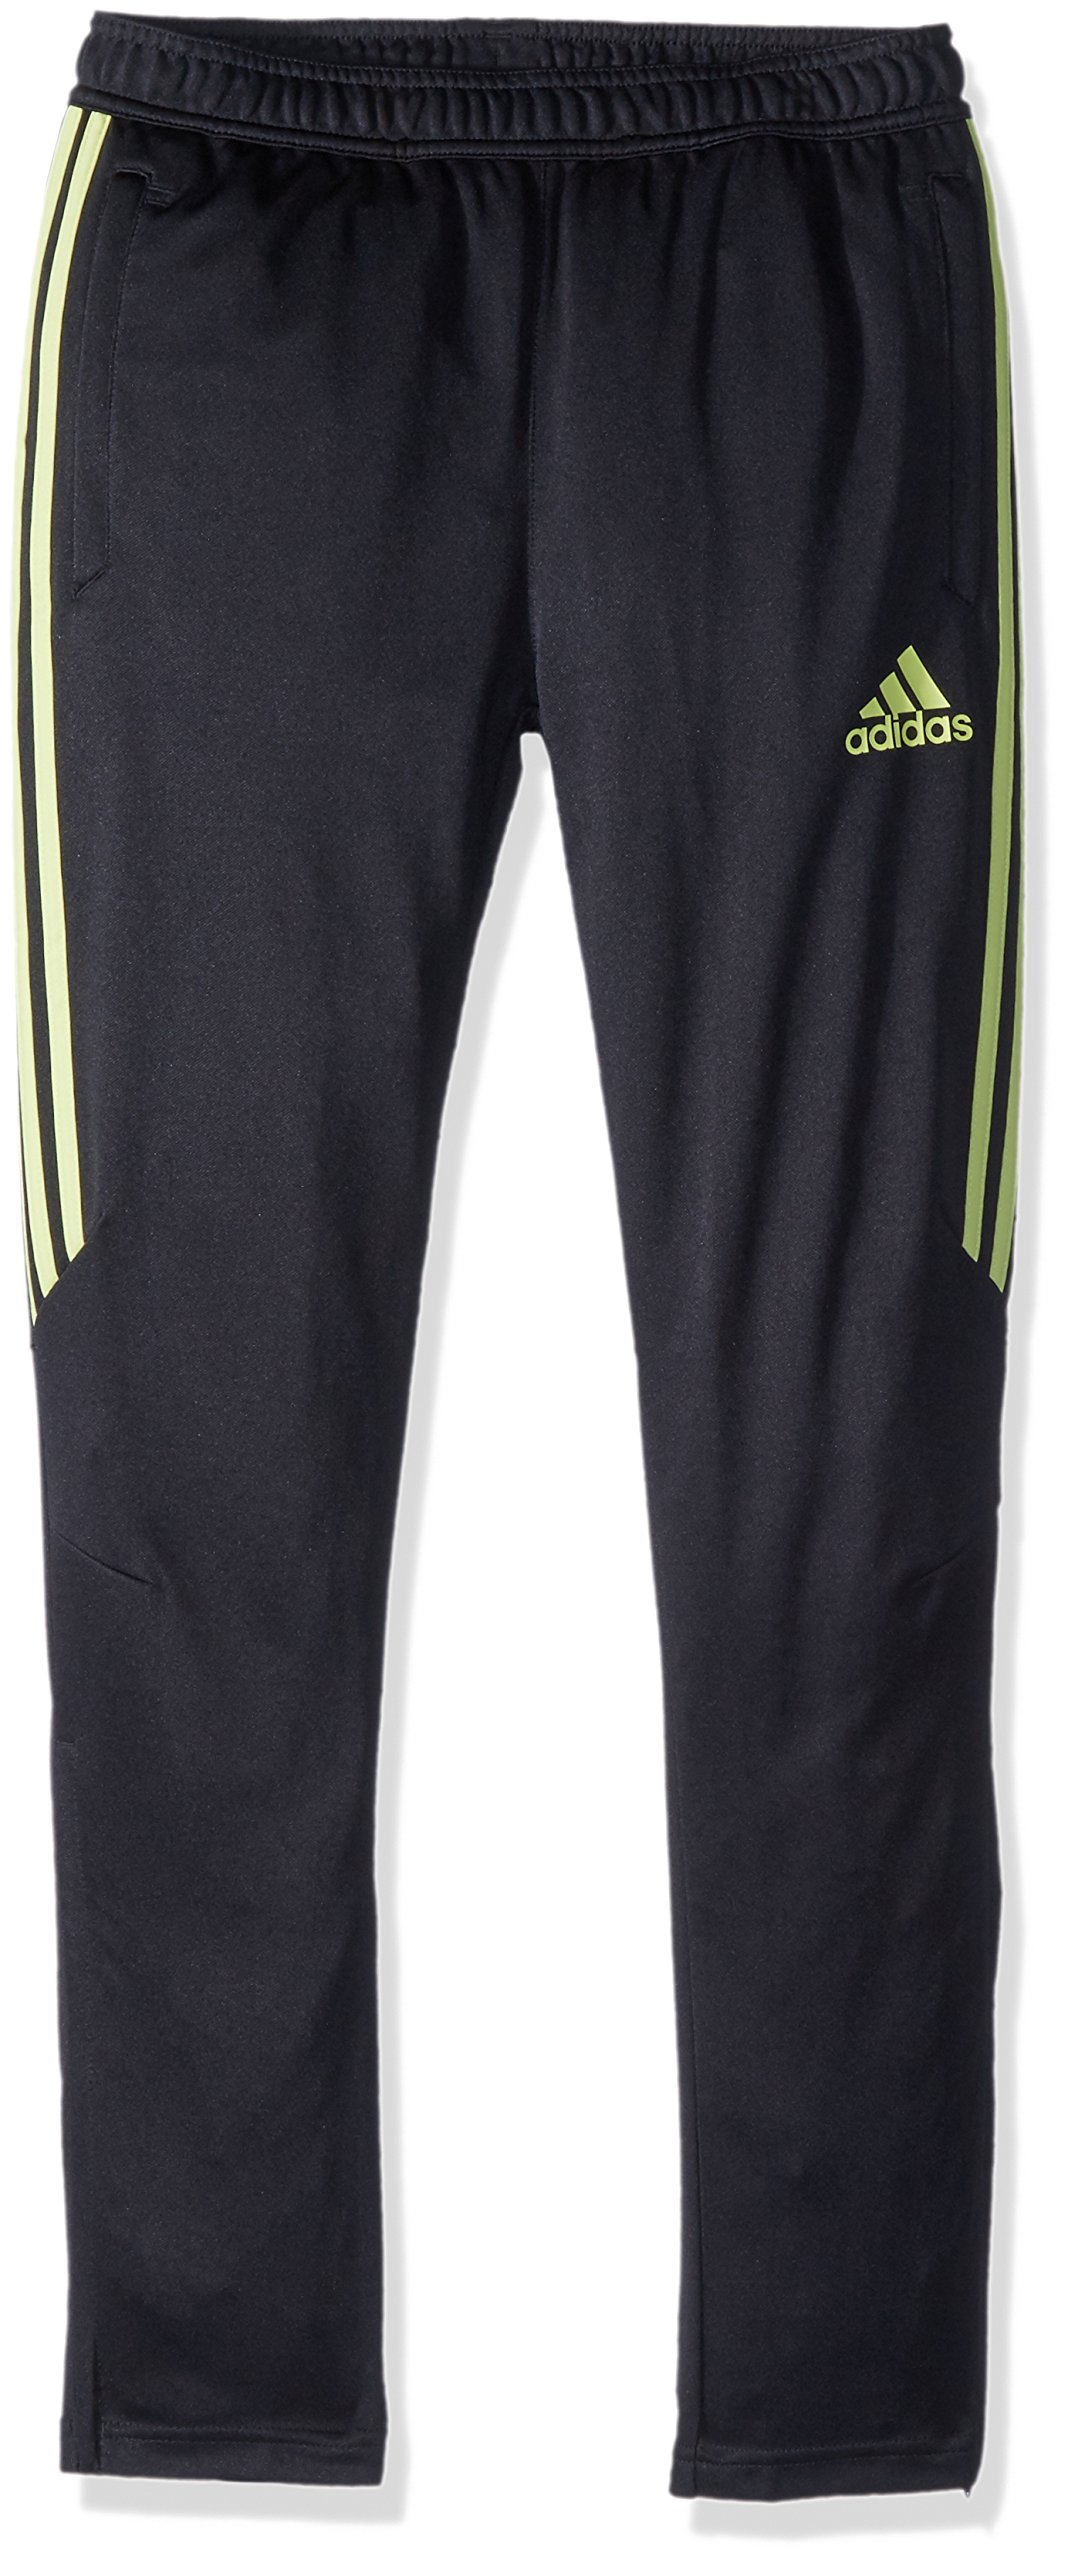 adidas Boys Soccer Tiro 17 Training Pants, Black/Semi Frozen Yellow, Small